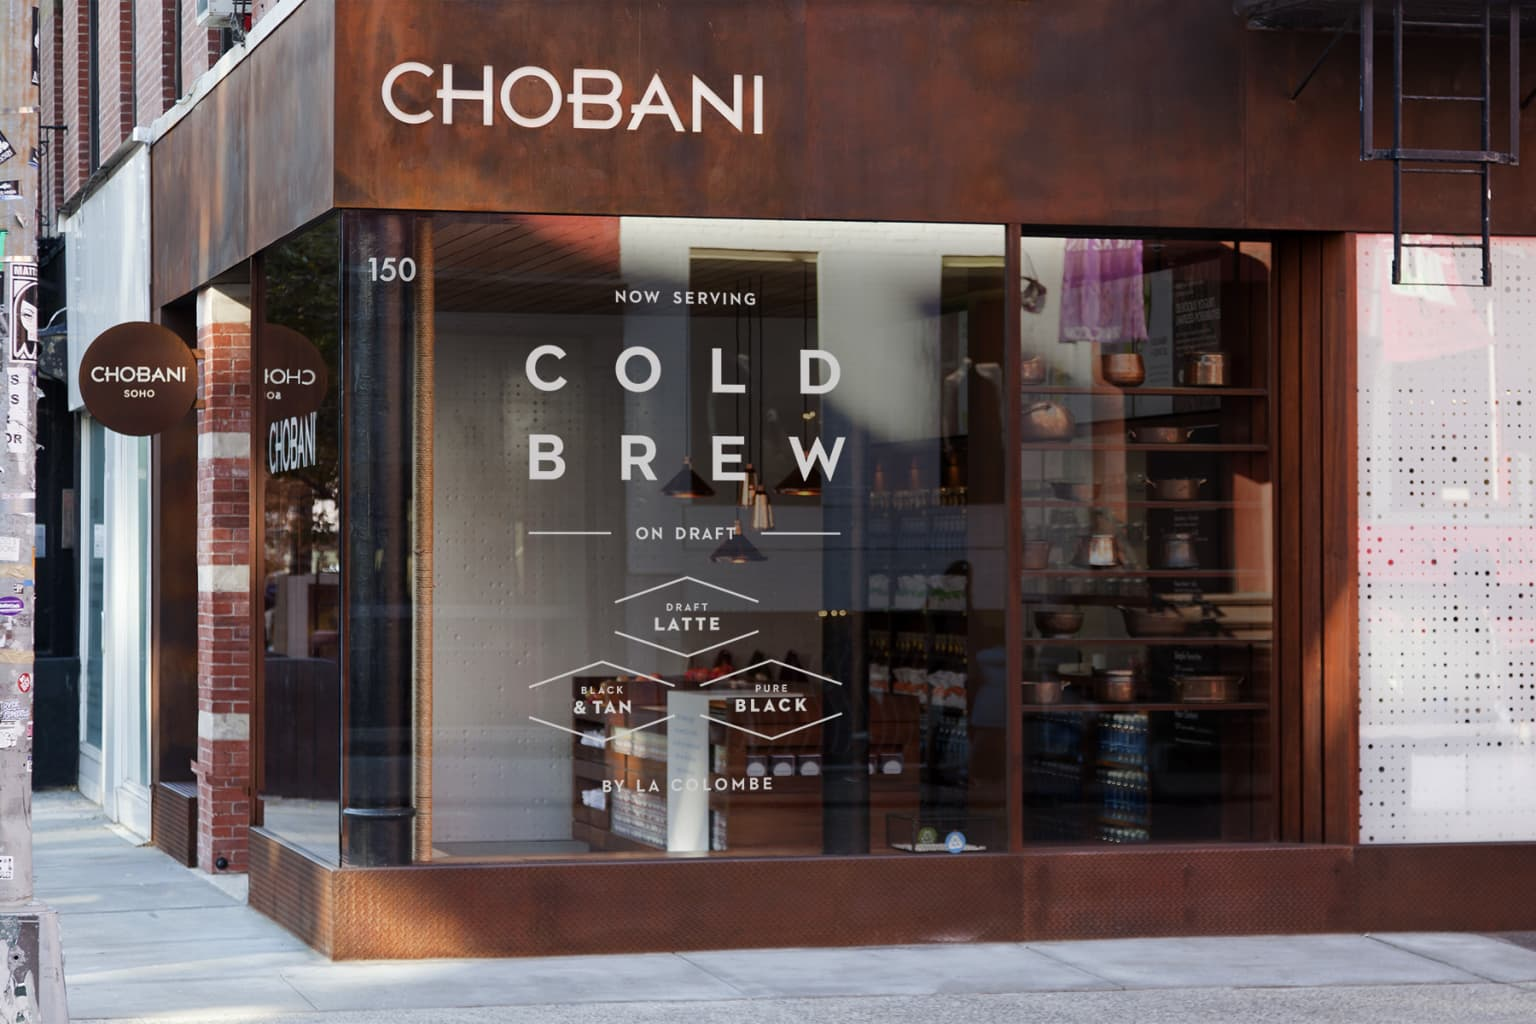 Chobani Soho Cafe Cold Brew Campaign